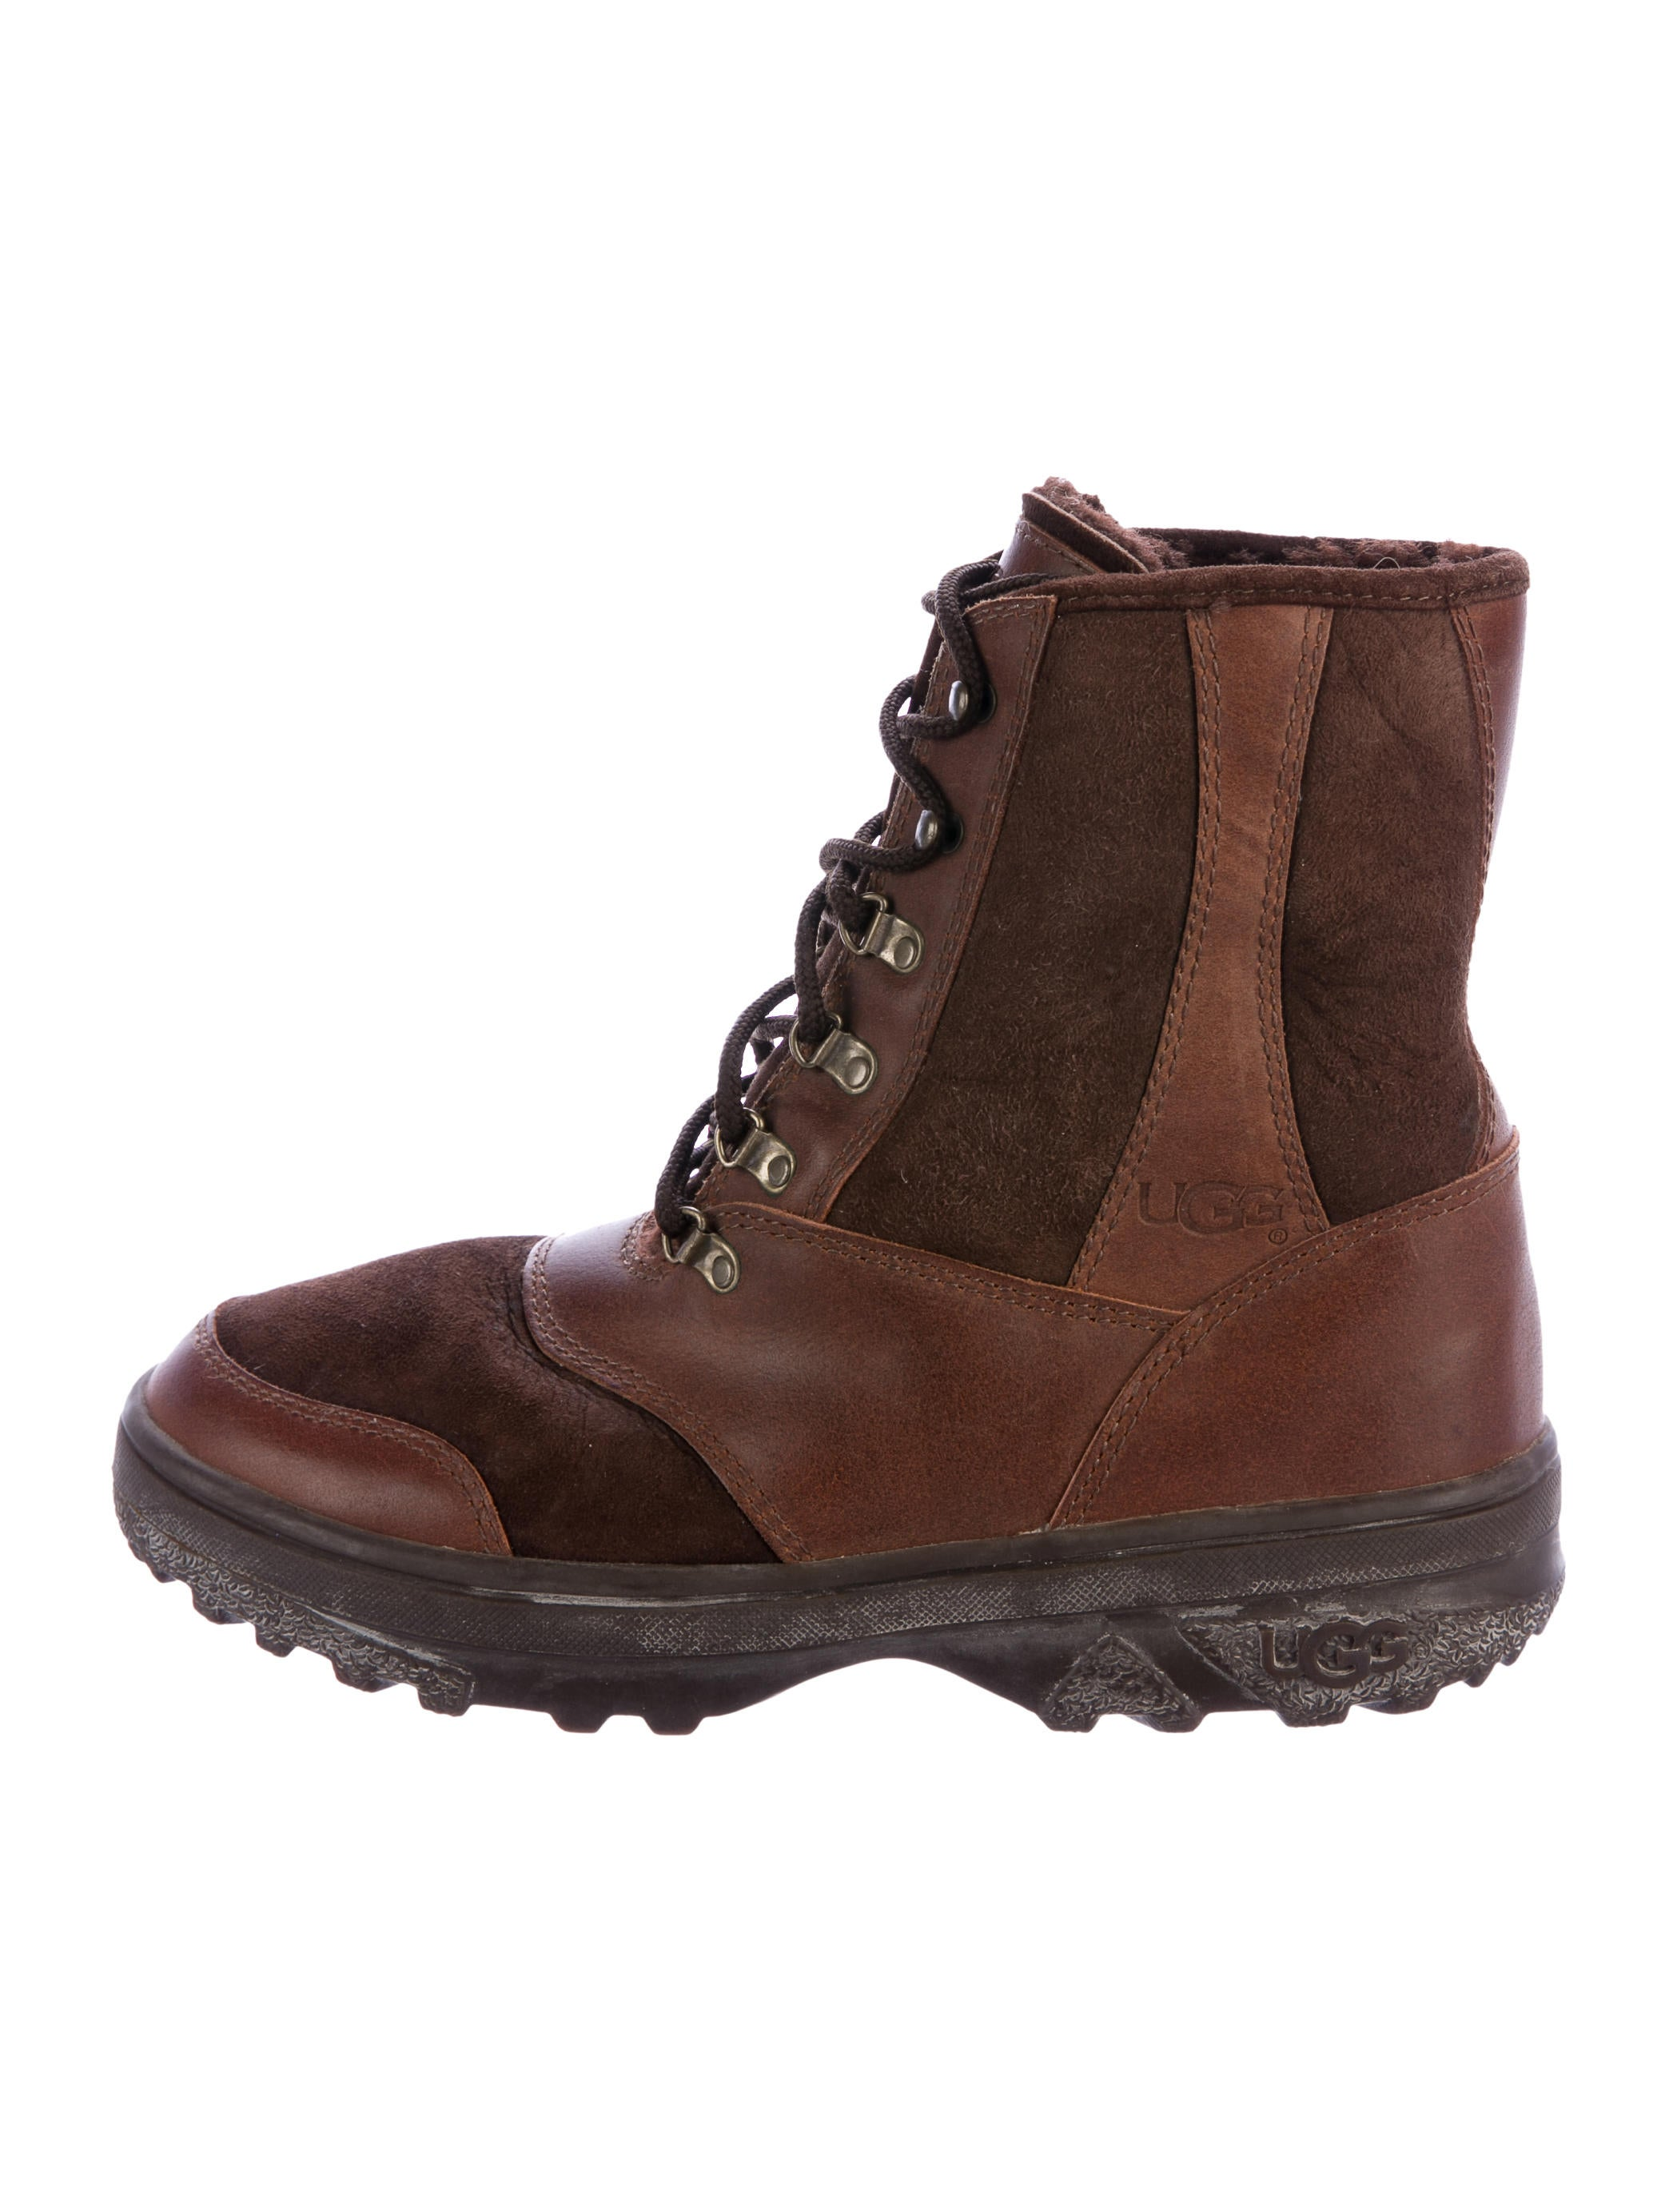 ugg australia shearling lined hiking boots shoes